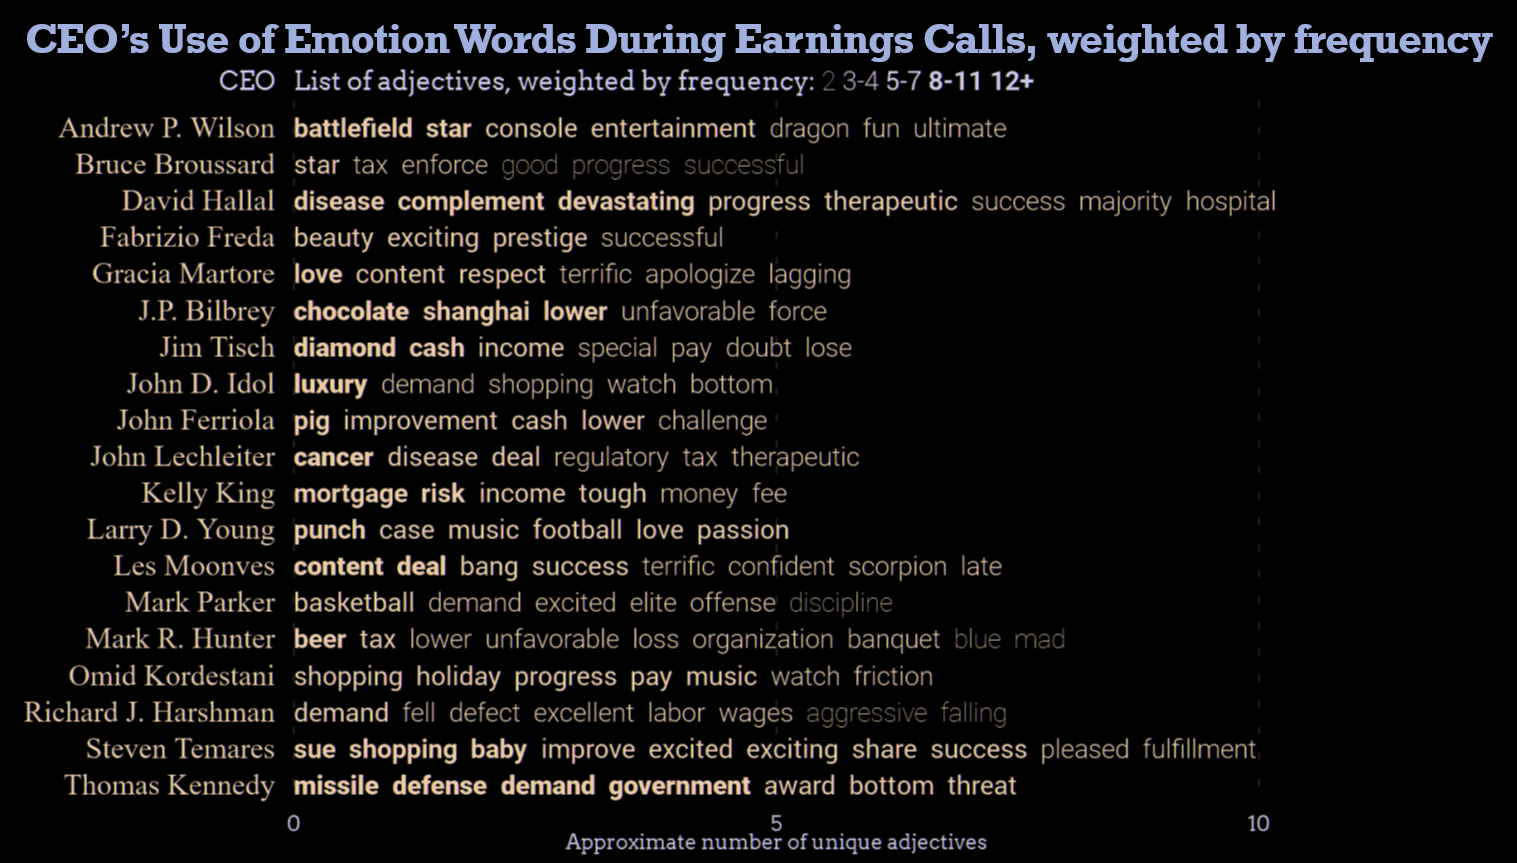 List of unique emotion words weighted by frequency